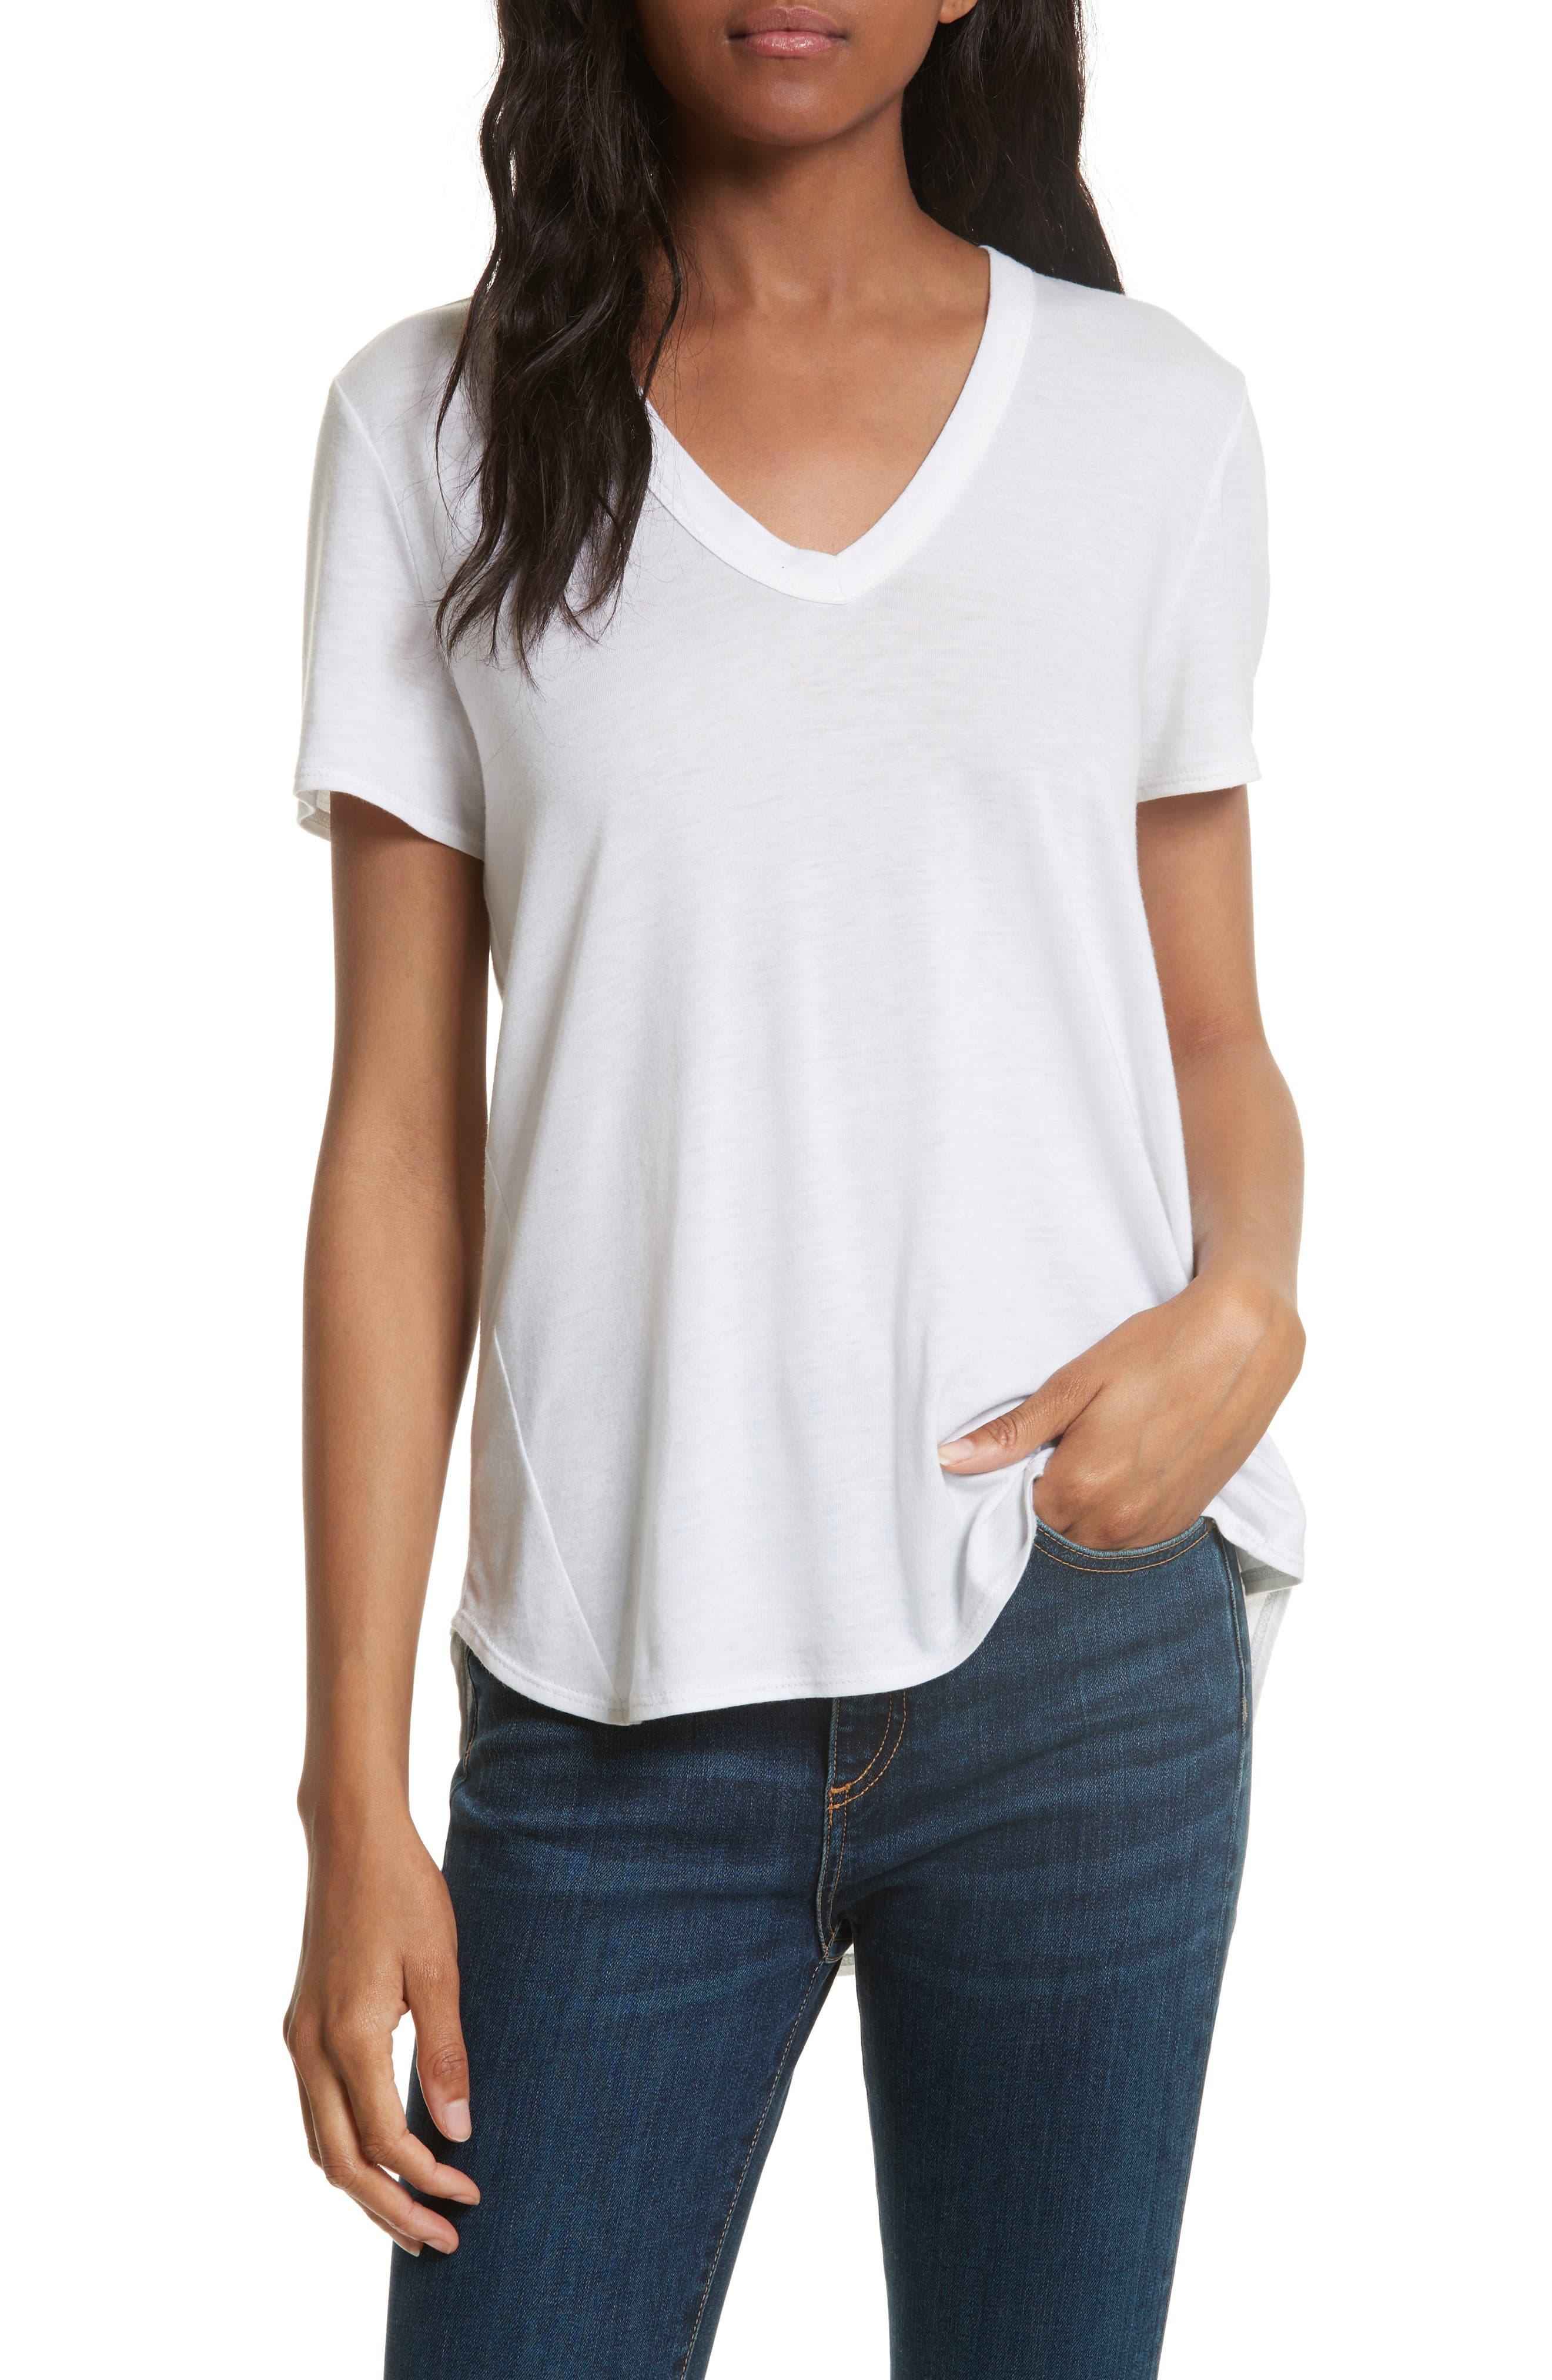 Cindy V-Neck High Low Tee in White